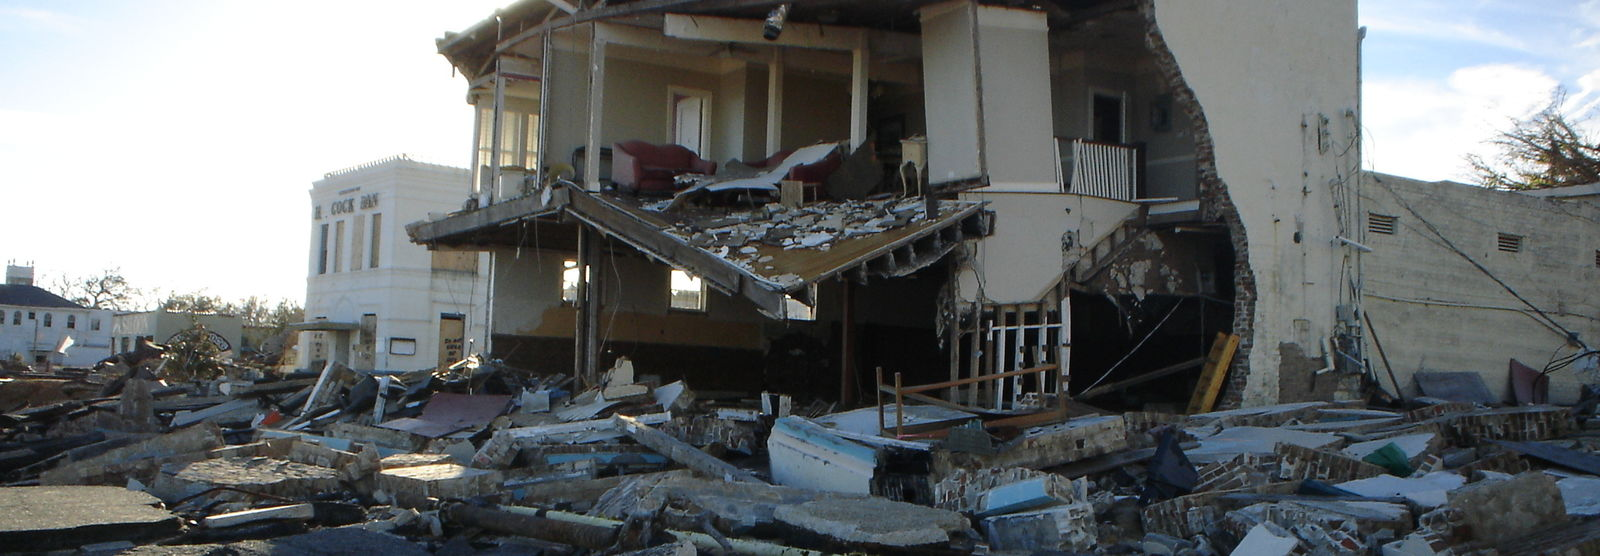 house destroyed from hurricane katrina